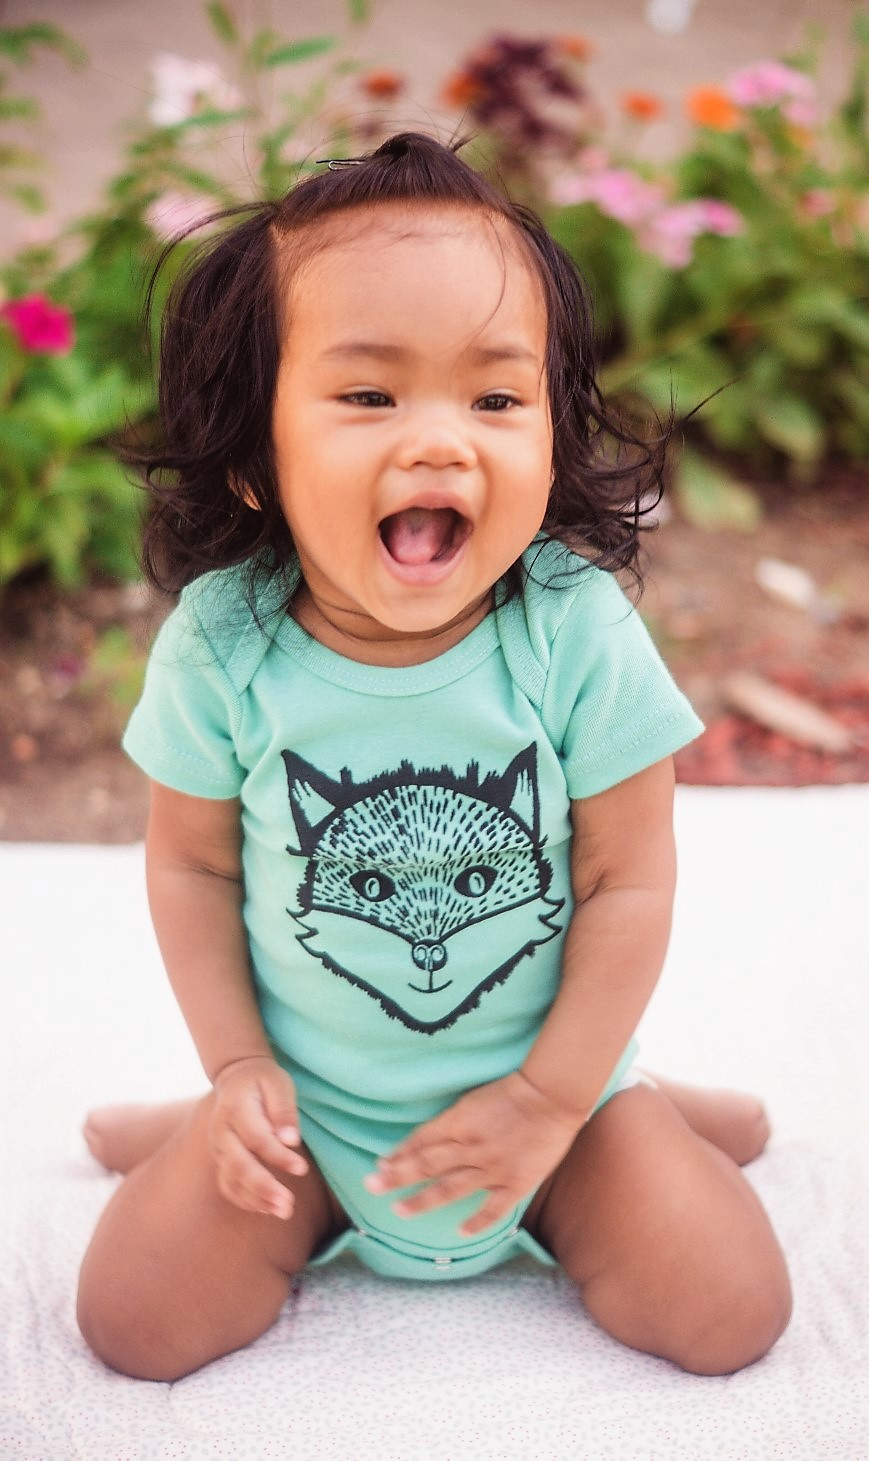 "Yinibini Baby model wearing 'Clever Like a Fox"" One-Piece in Seafoam."